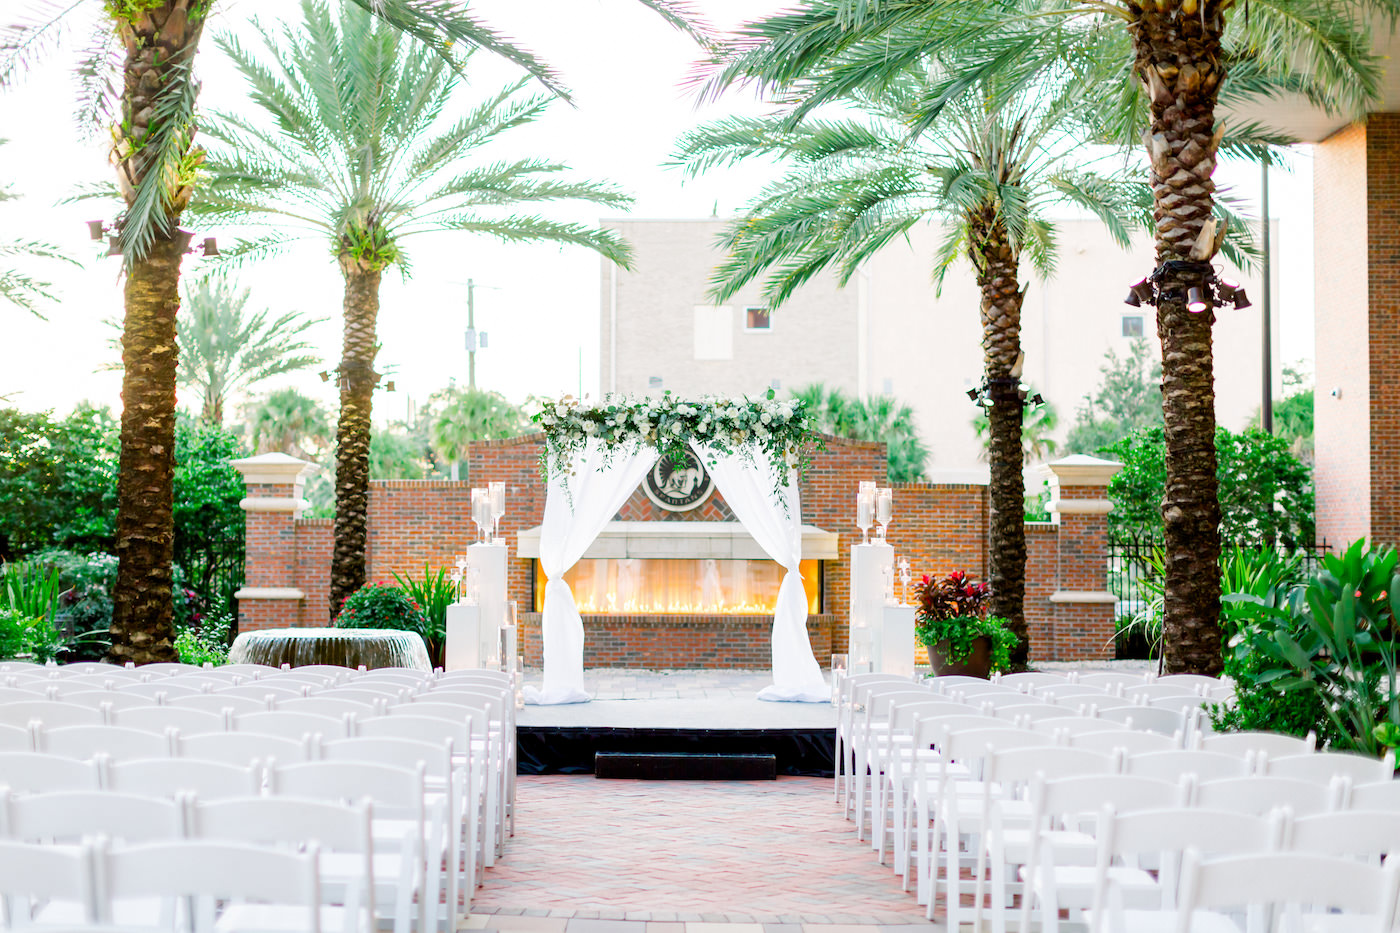 Simple Classic New Year's Eve Wedding Ceremony Decor, Arch with White Draped Linens, Greenery Arrangement and White Florals, Red Brick Fireplace Backdrop, Tampa Agliano Park Courtyard | Wedding Photographer Shauna and Jordon Photography | Wedding Planner UNIQUE Weddings + Events | Wedding Rentals A Chair Affair